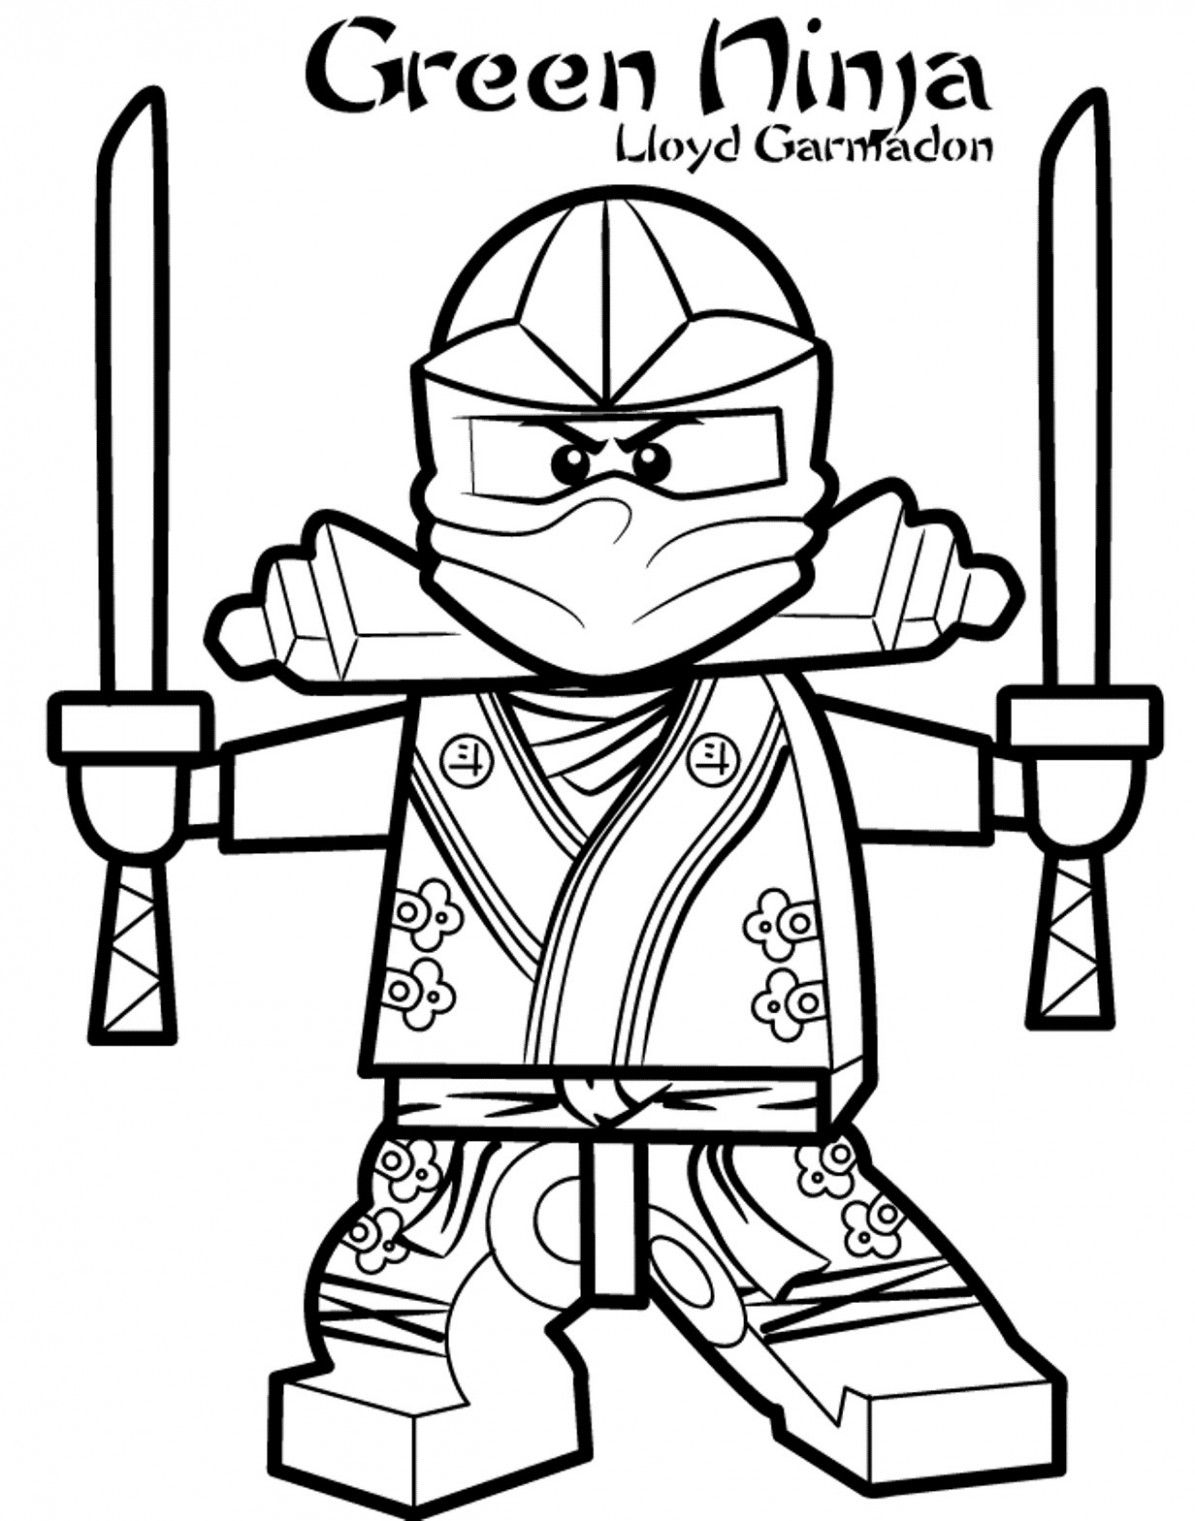 Printable Ninjago Coloring Pages Coloring Book | Thejourneyvisvi.com ..